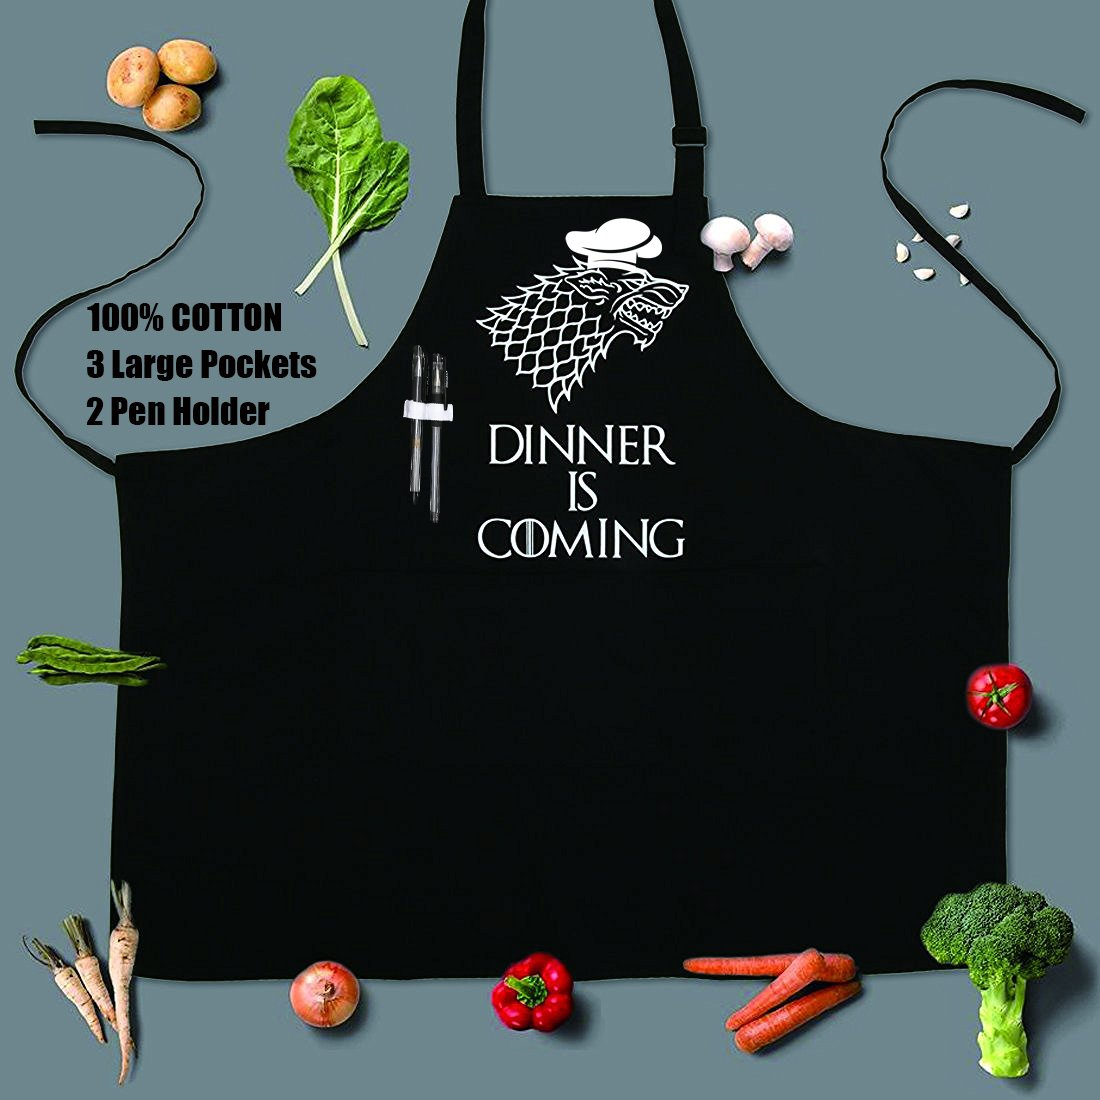 Grill Aprons Kitchen Chef Bib - Famgem Dinner is Coming Professional for BBQ, Baking, Cooking for Men Women / 100% Cotton, Adjustable 3 Pockets, Black by Famgem (Image #4)